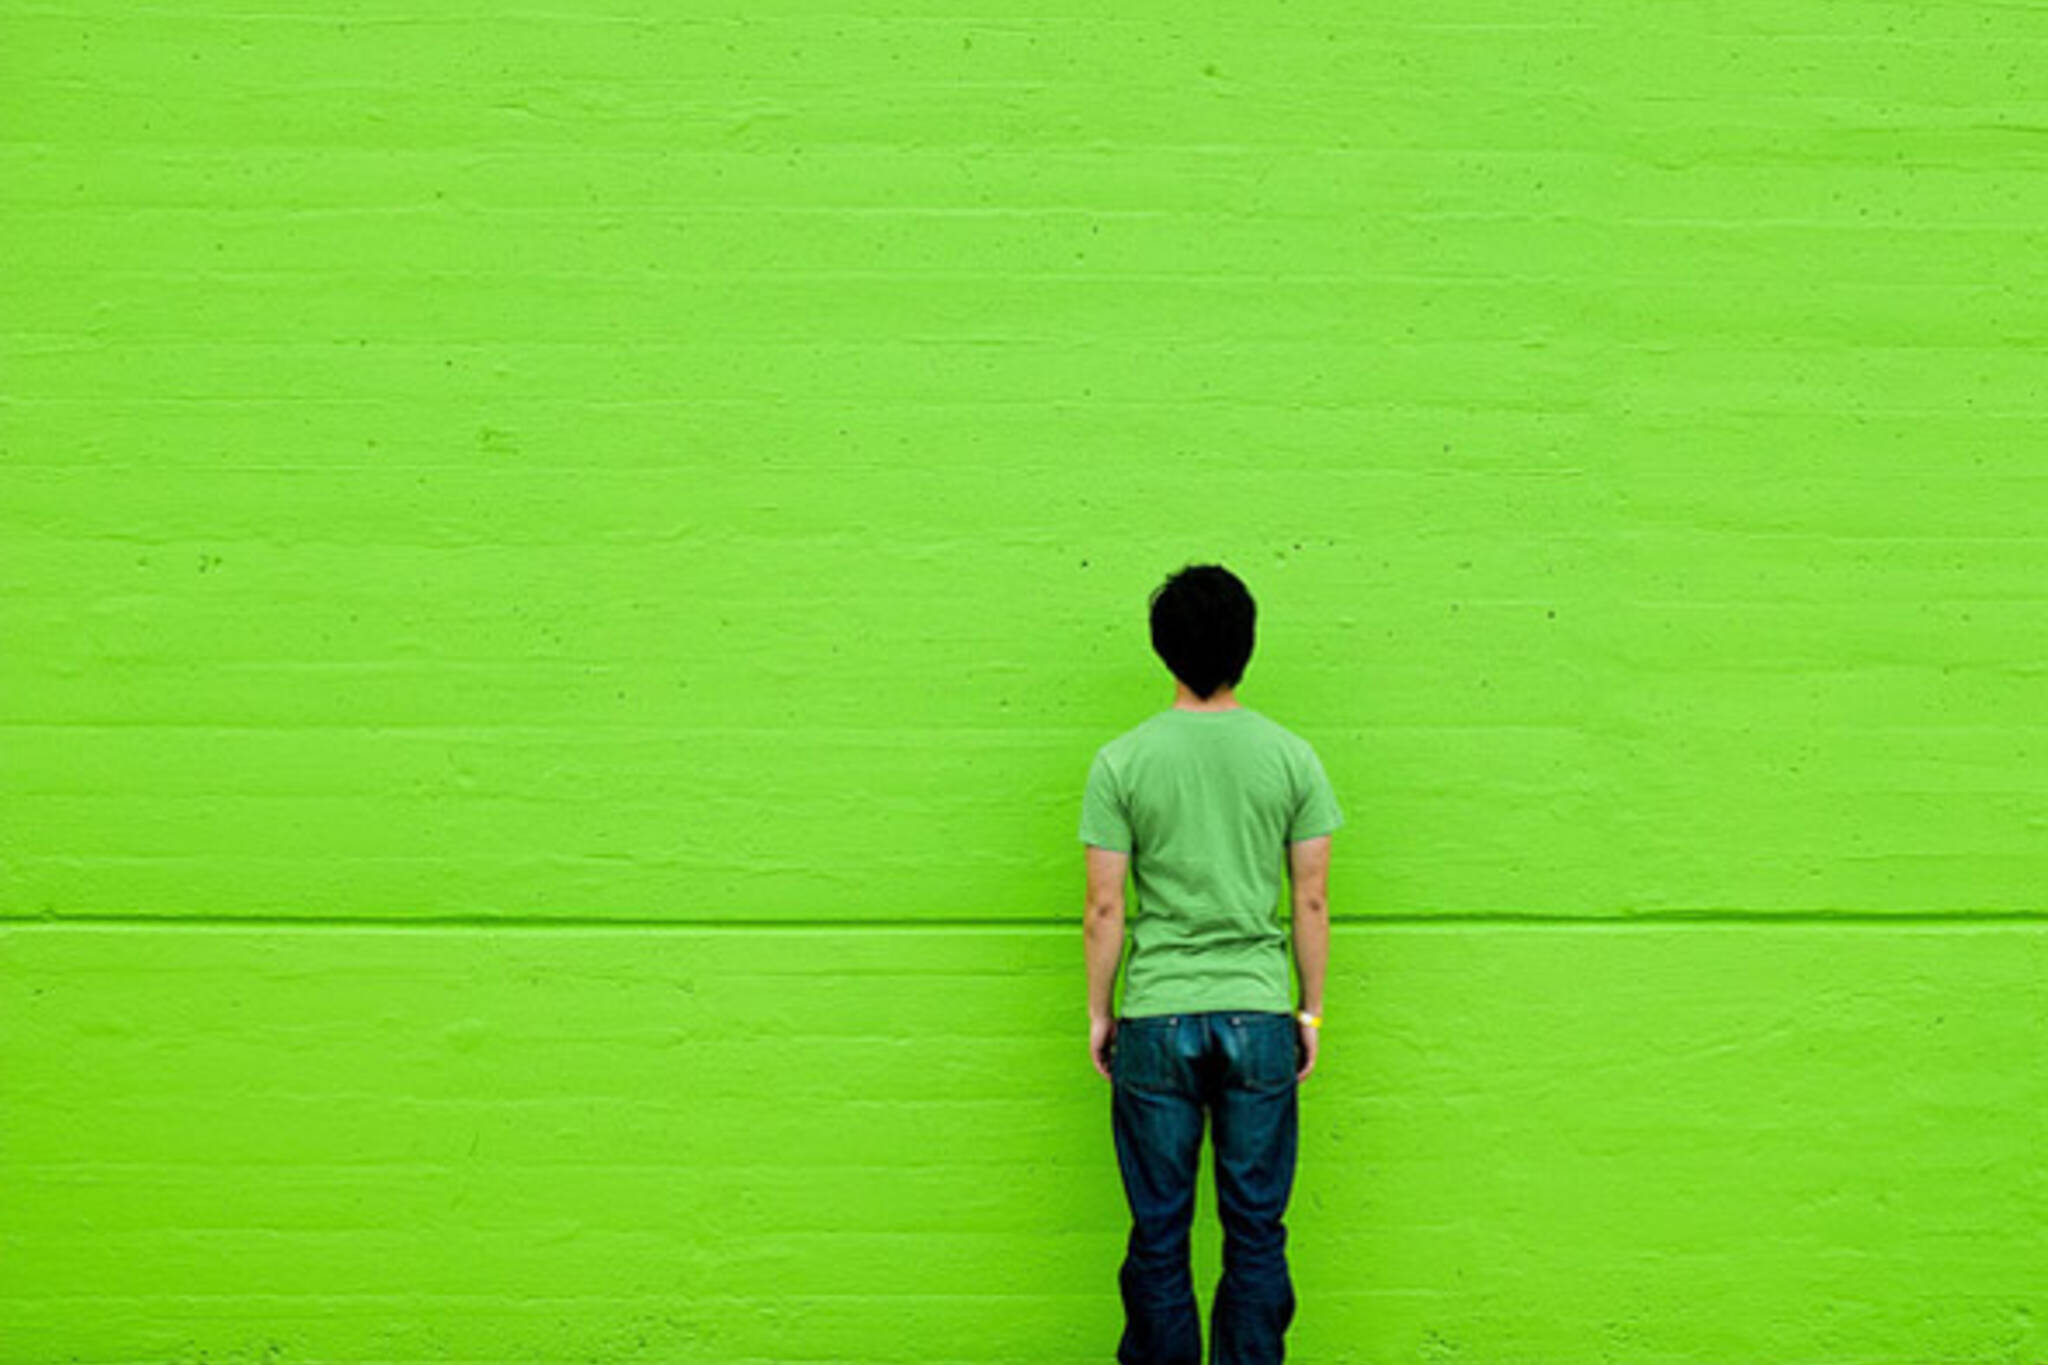 green, wall, shirt